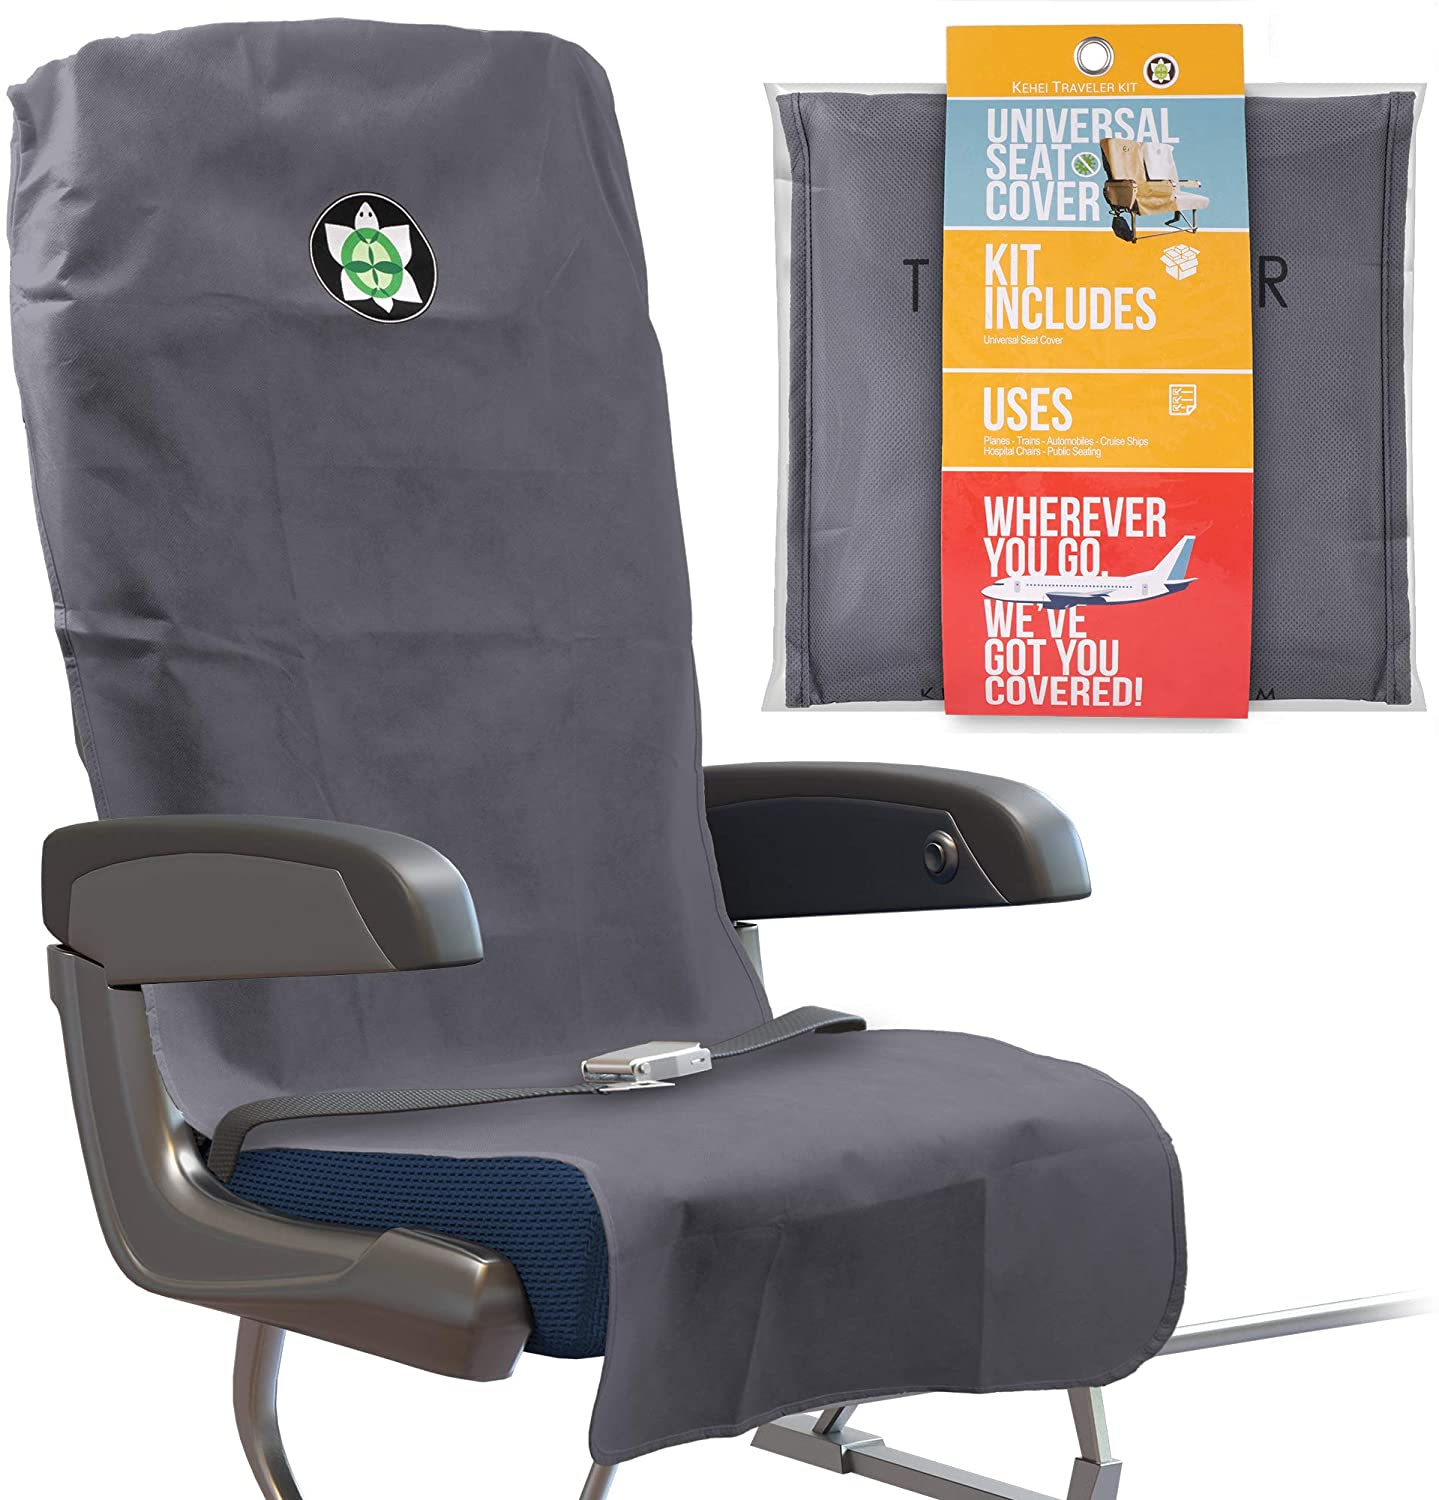 Kehei Traveler Deluxe Protective Universal Seat Cover and Storage Pouch - Lighweight and Portable - Washable & Reusable - Take Anywhere, Fits Most Airplanes, Trains, Bus, Ride-Share Car - Gray